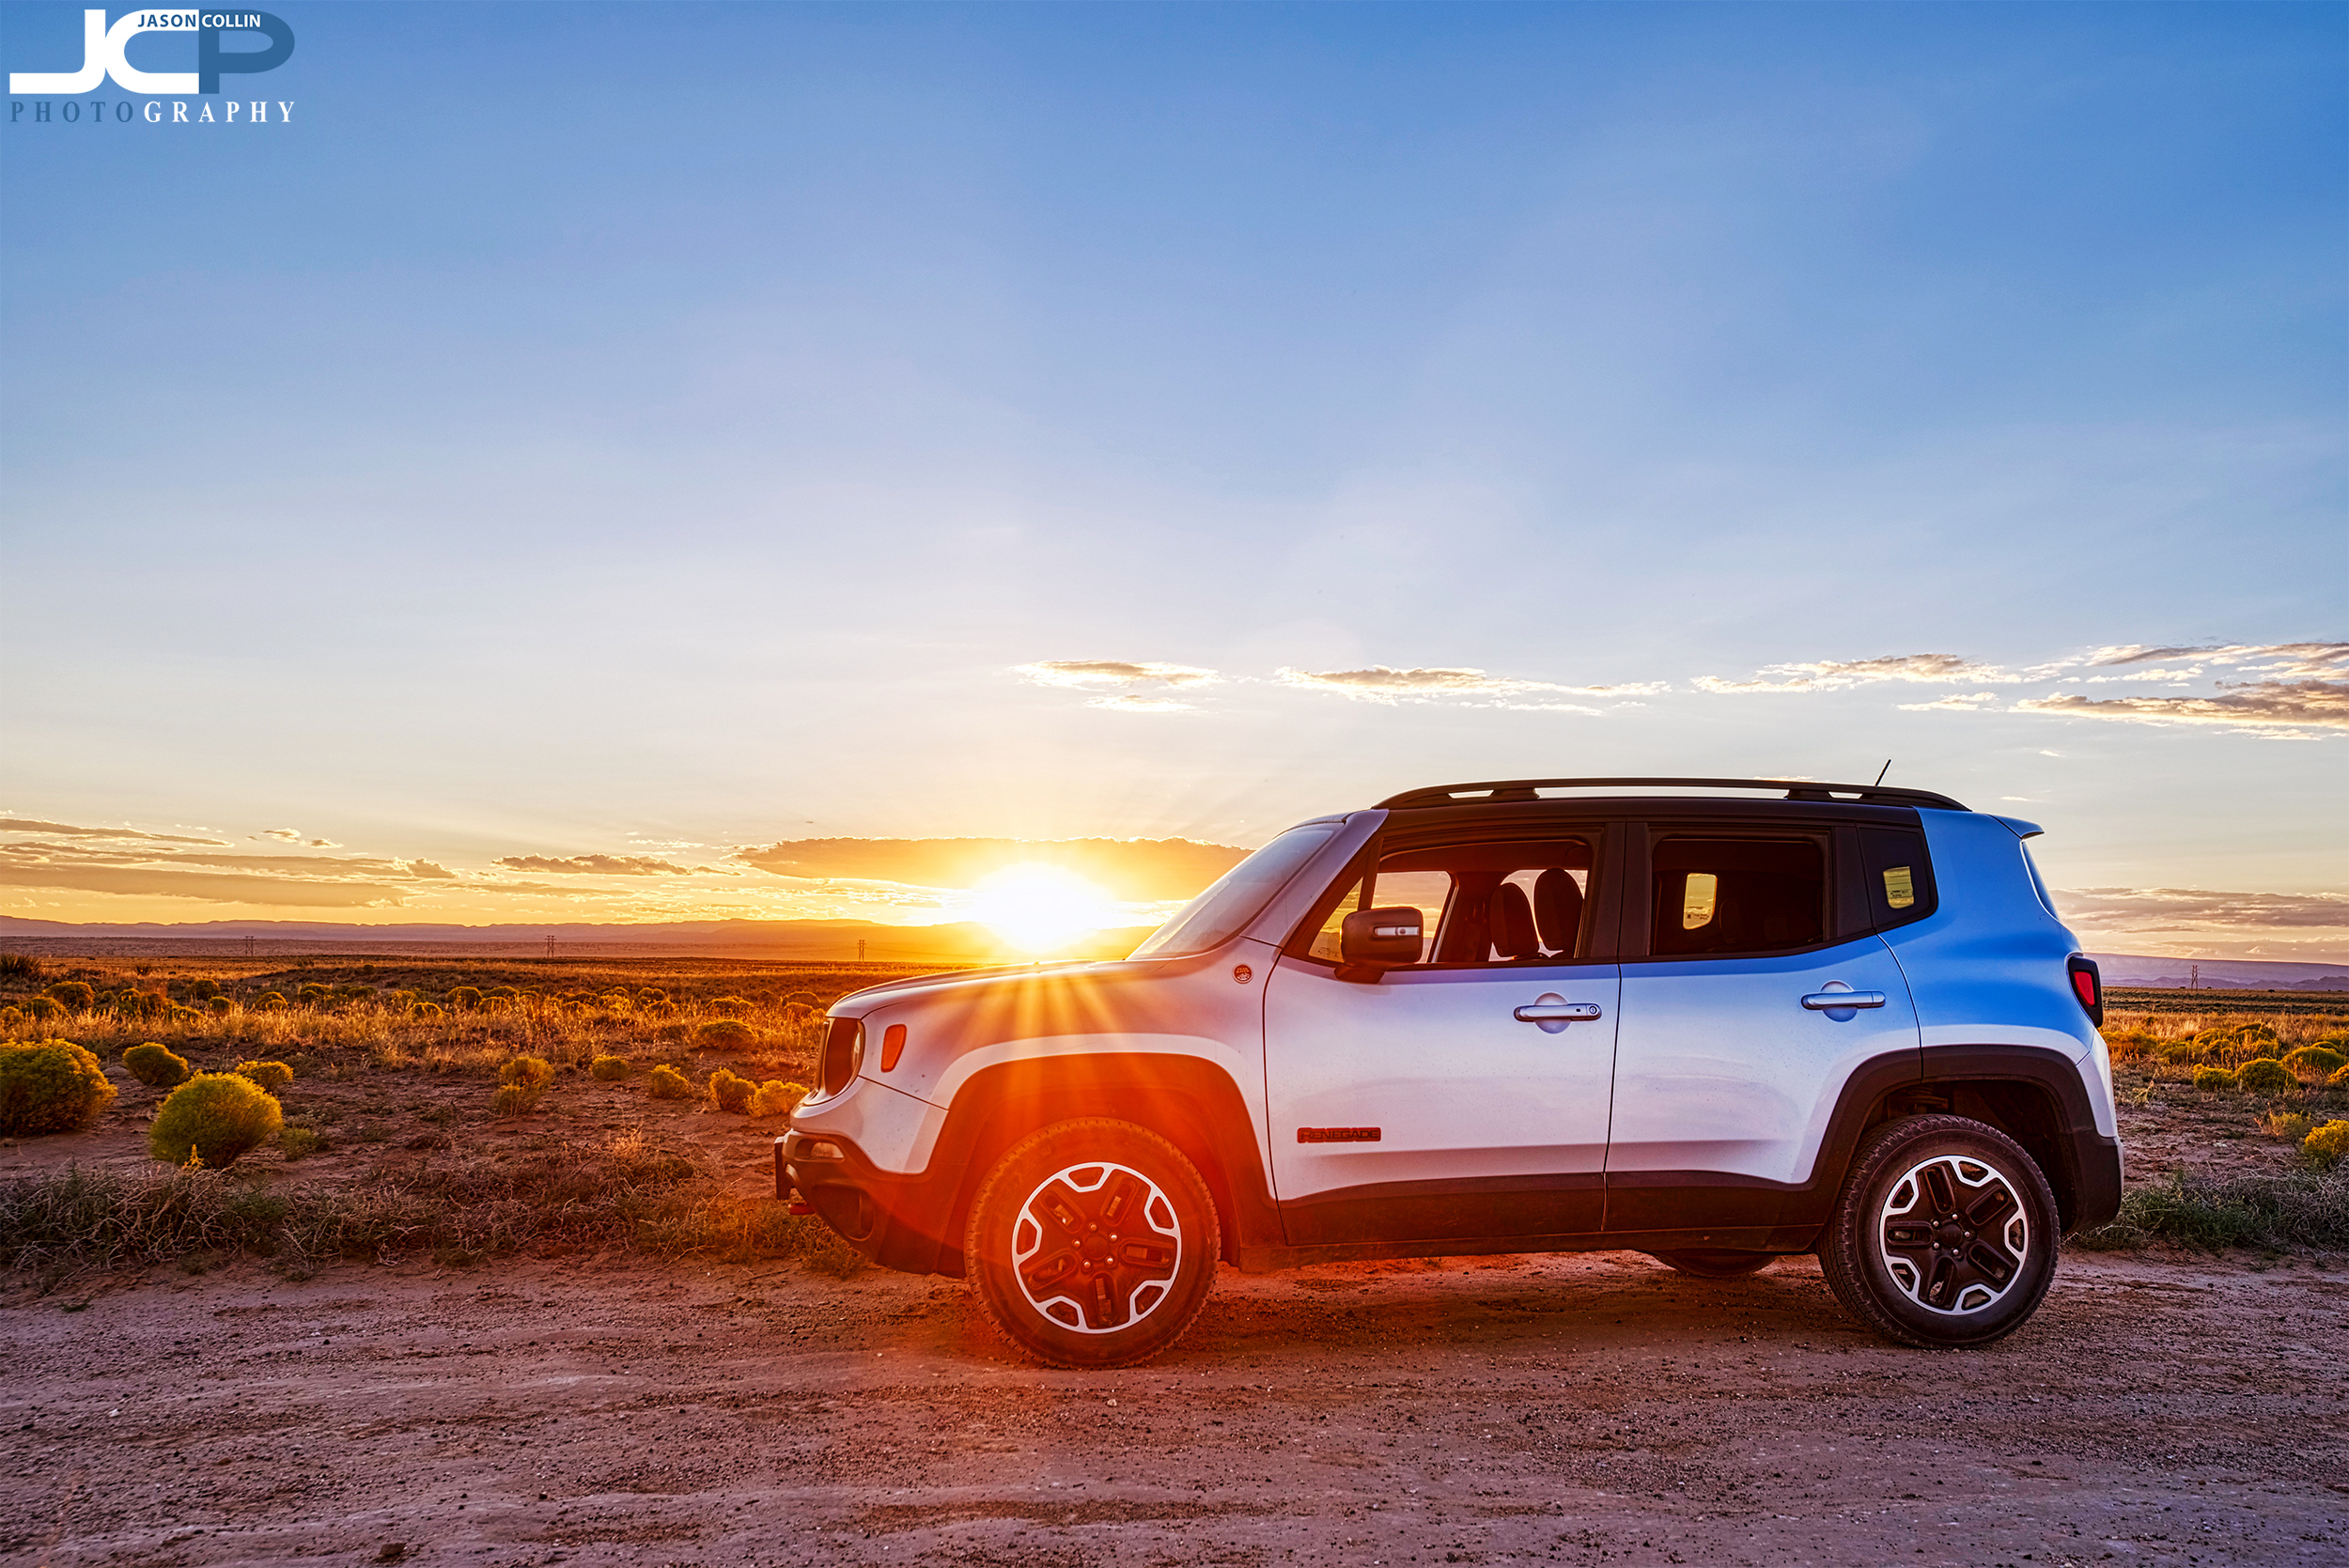 It's ok if your Jeep gets way in the sunset in the desert of New Mexico